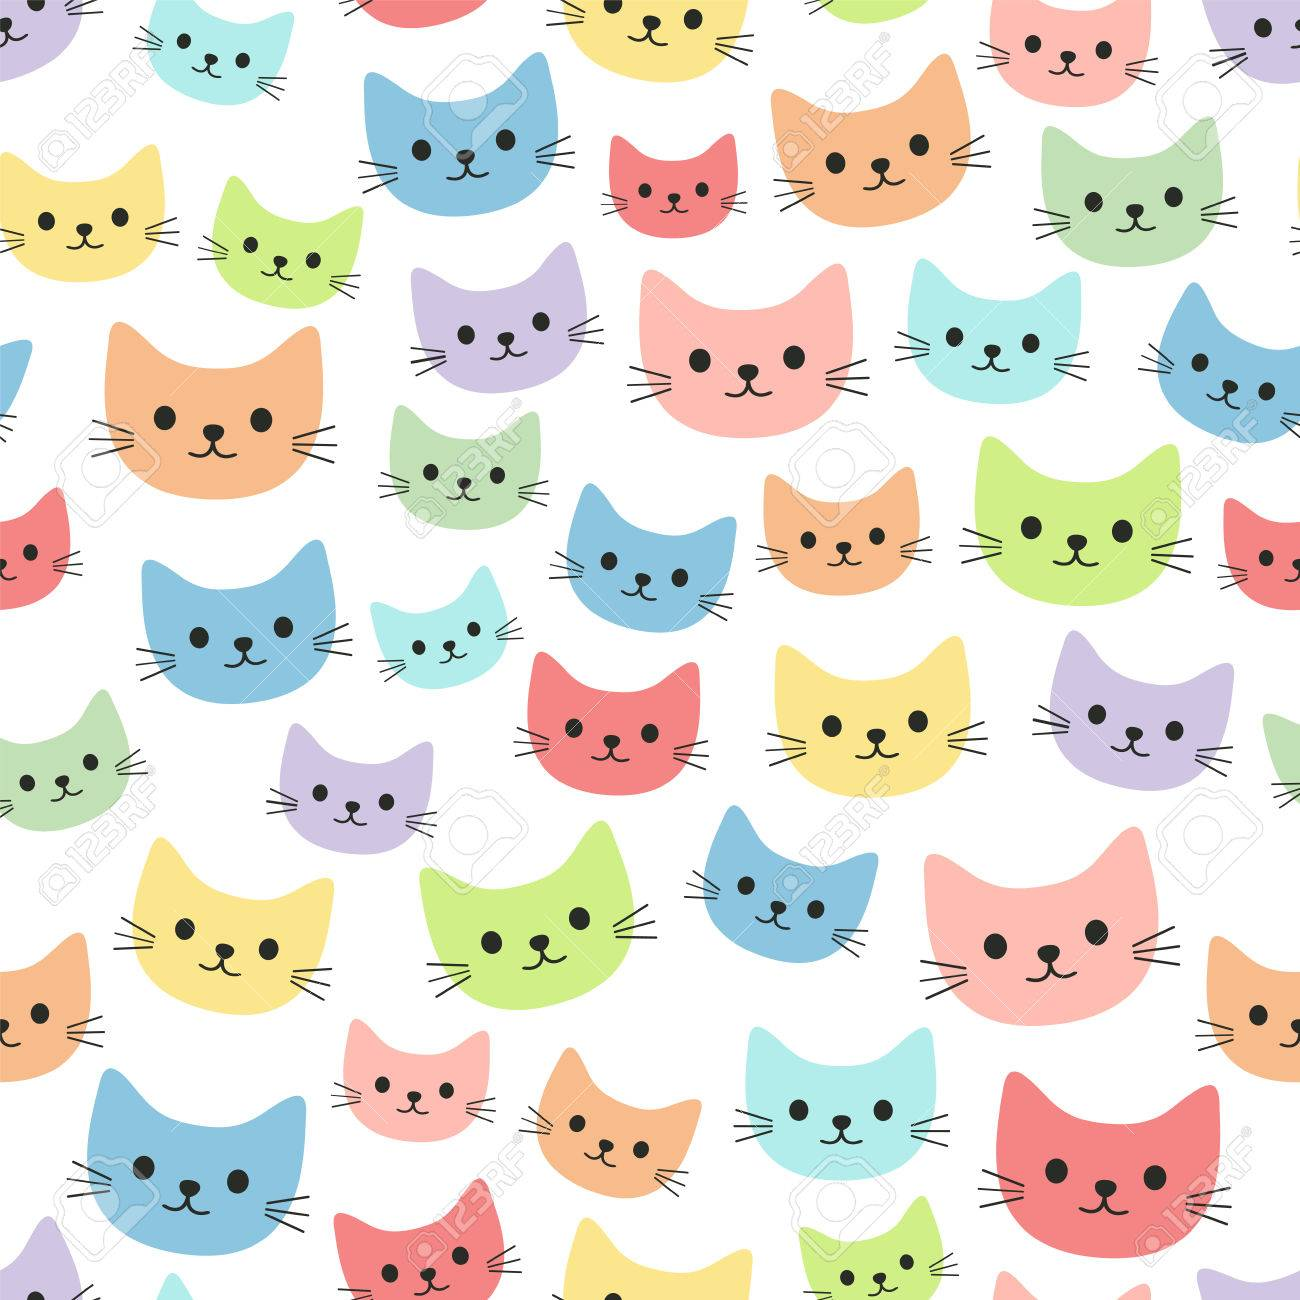 Colorful Cartoon Cats Seamless Wallpaper Royalty Free Cliparts Vectors And Stock Illustration Image 71650431